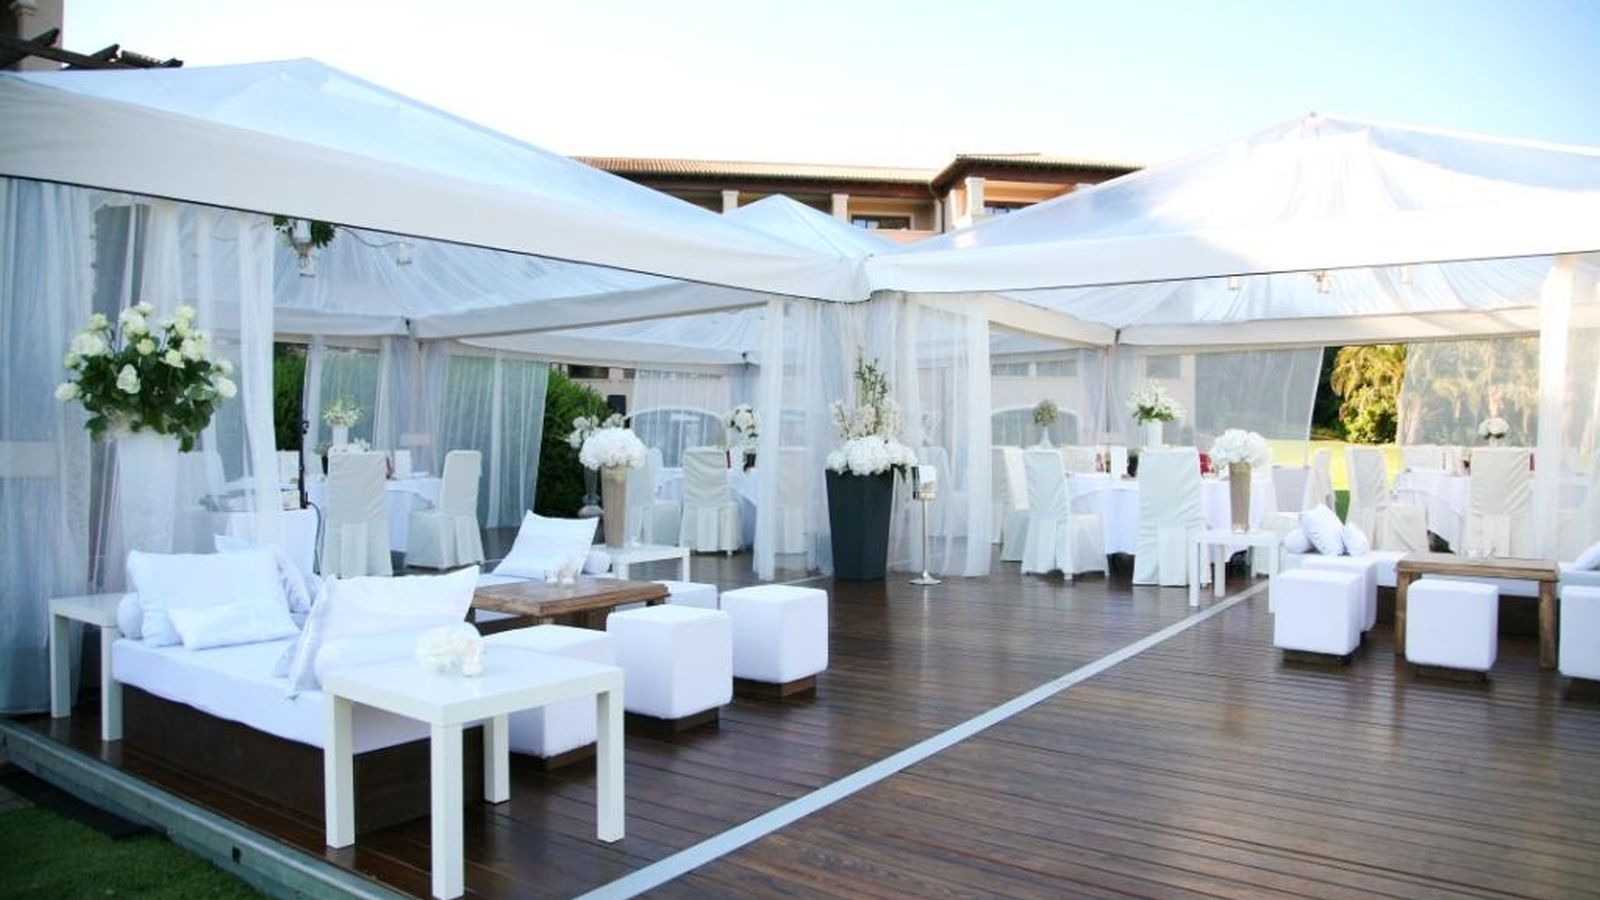 Wedding Dinner and dance floor set up including lounge area at the St. Regis Mallorca